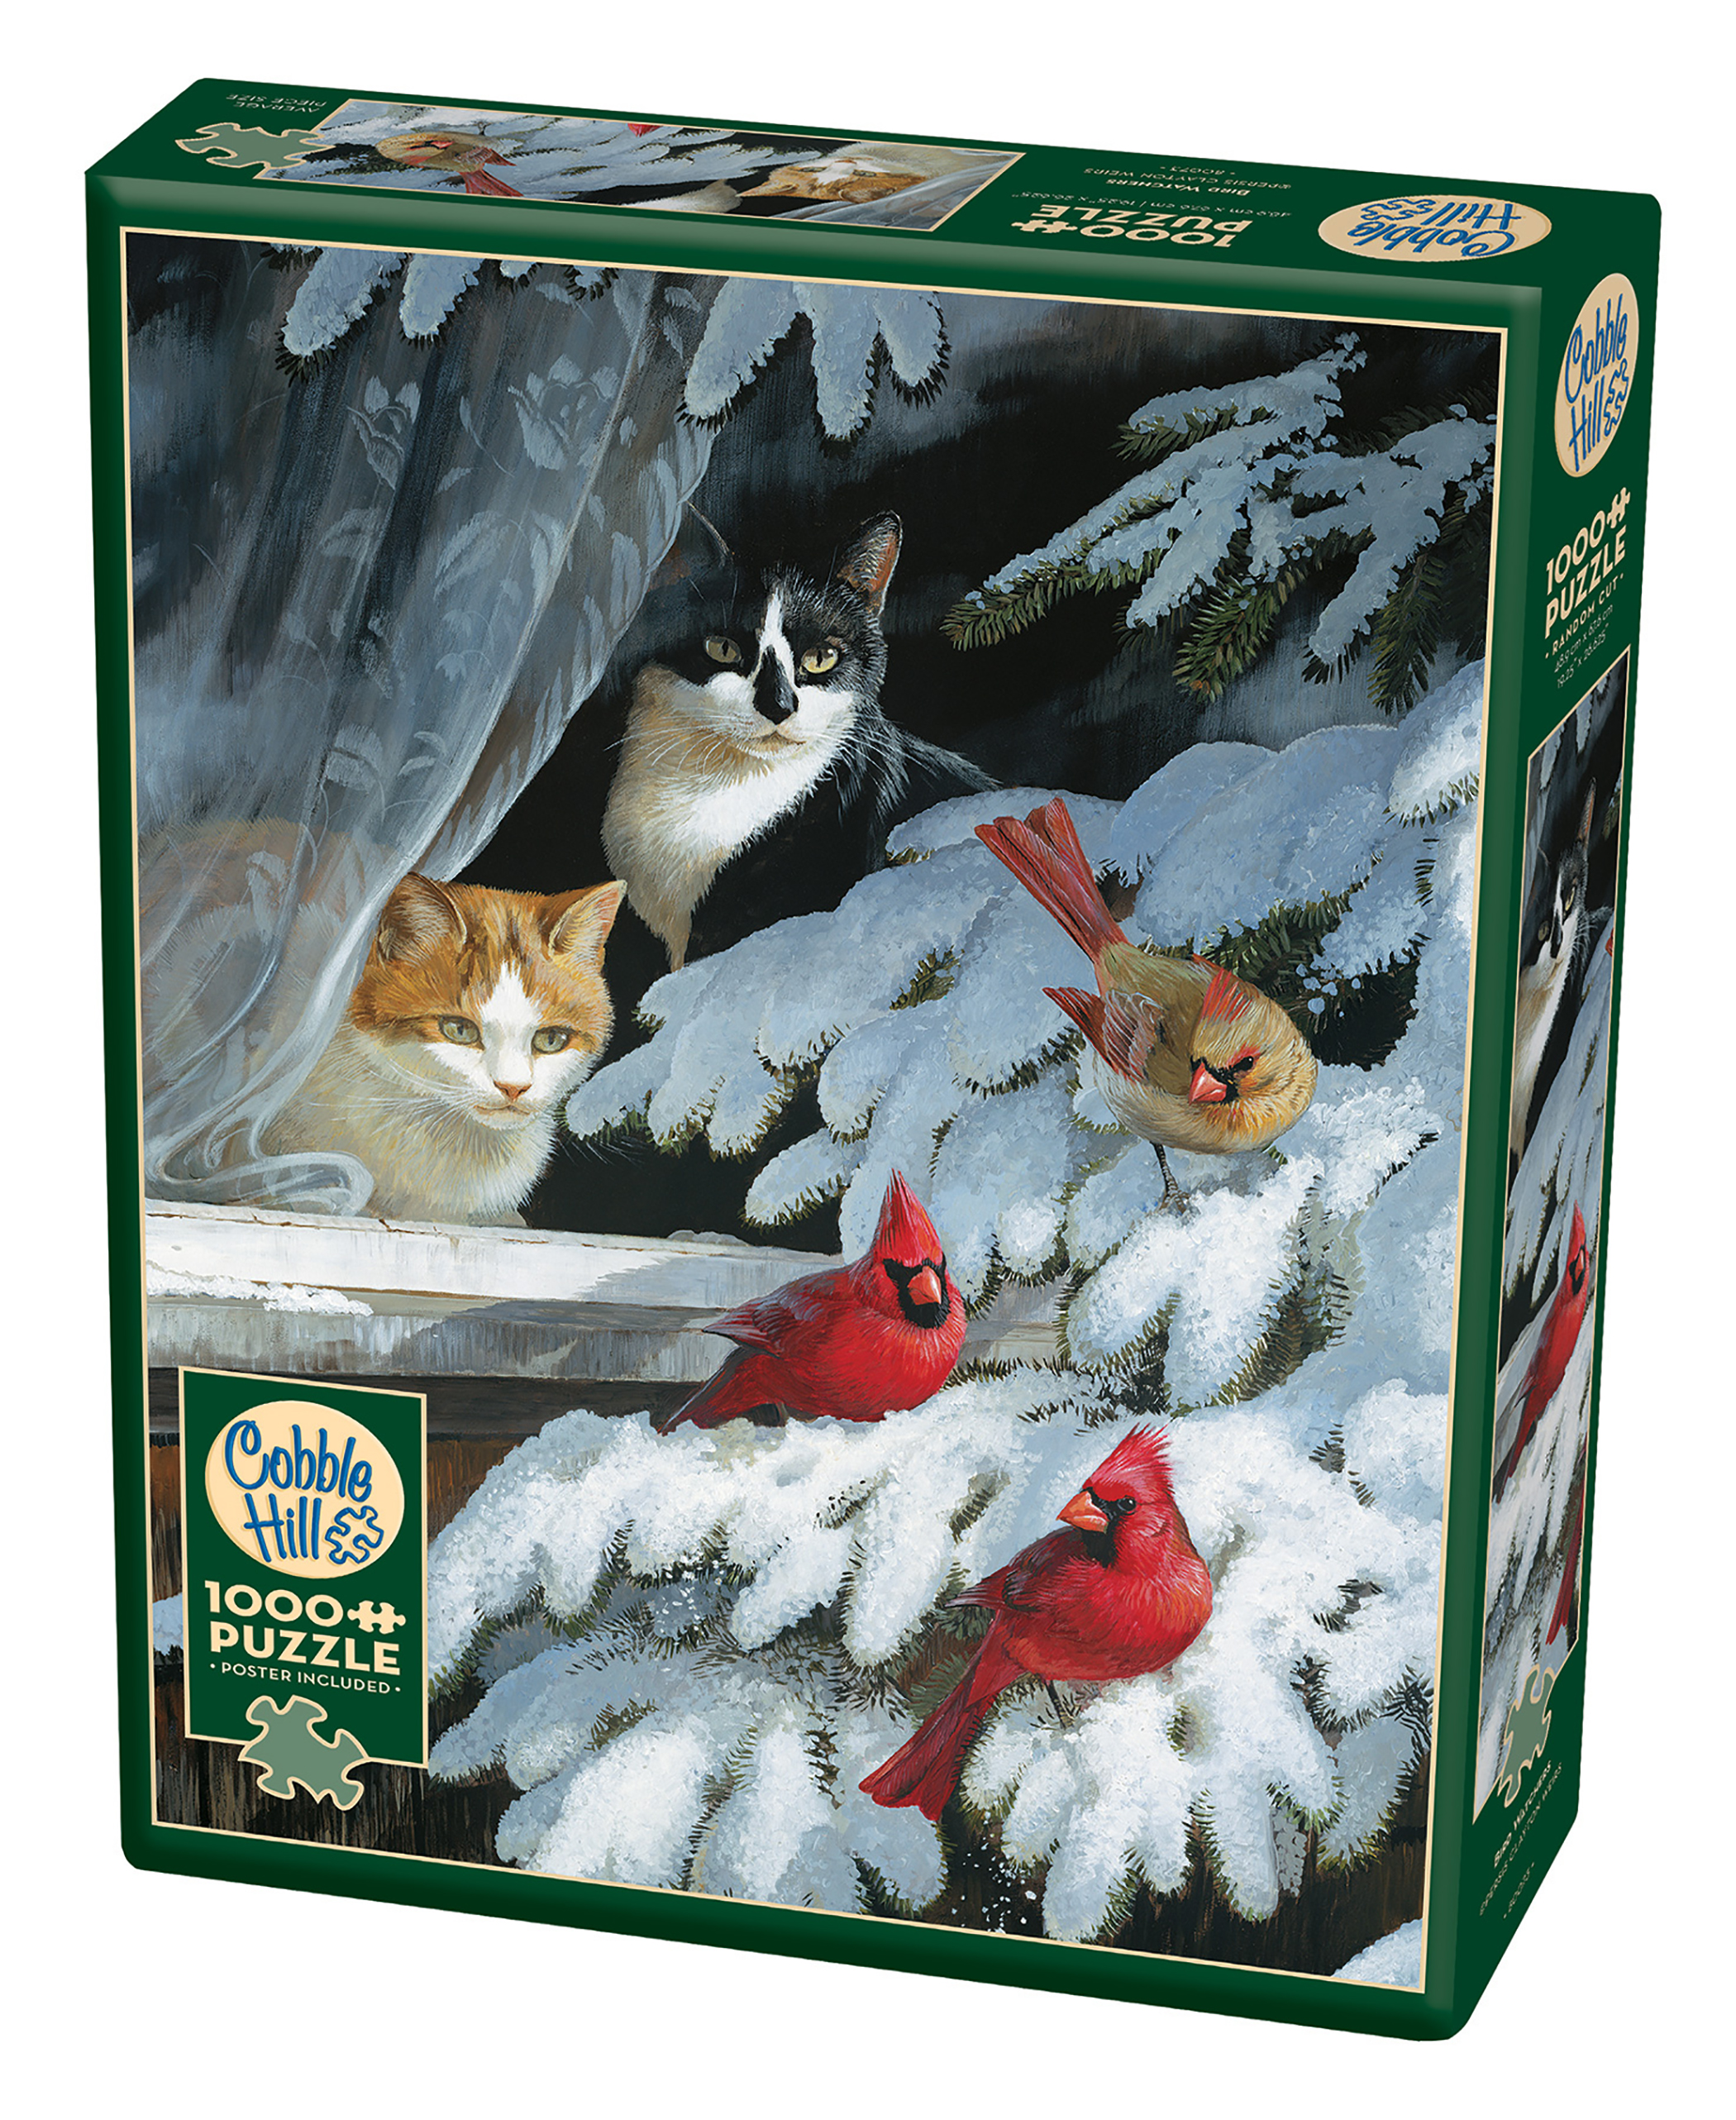 Cobble Hill: Bird Watchers 1000 Piece Jigsaw Puzzle by Outset Media